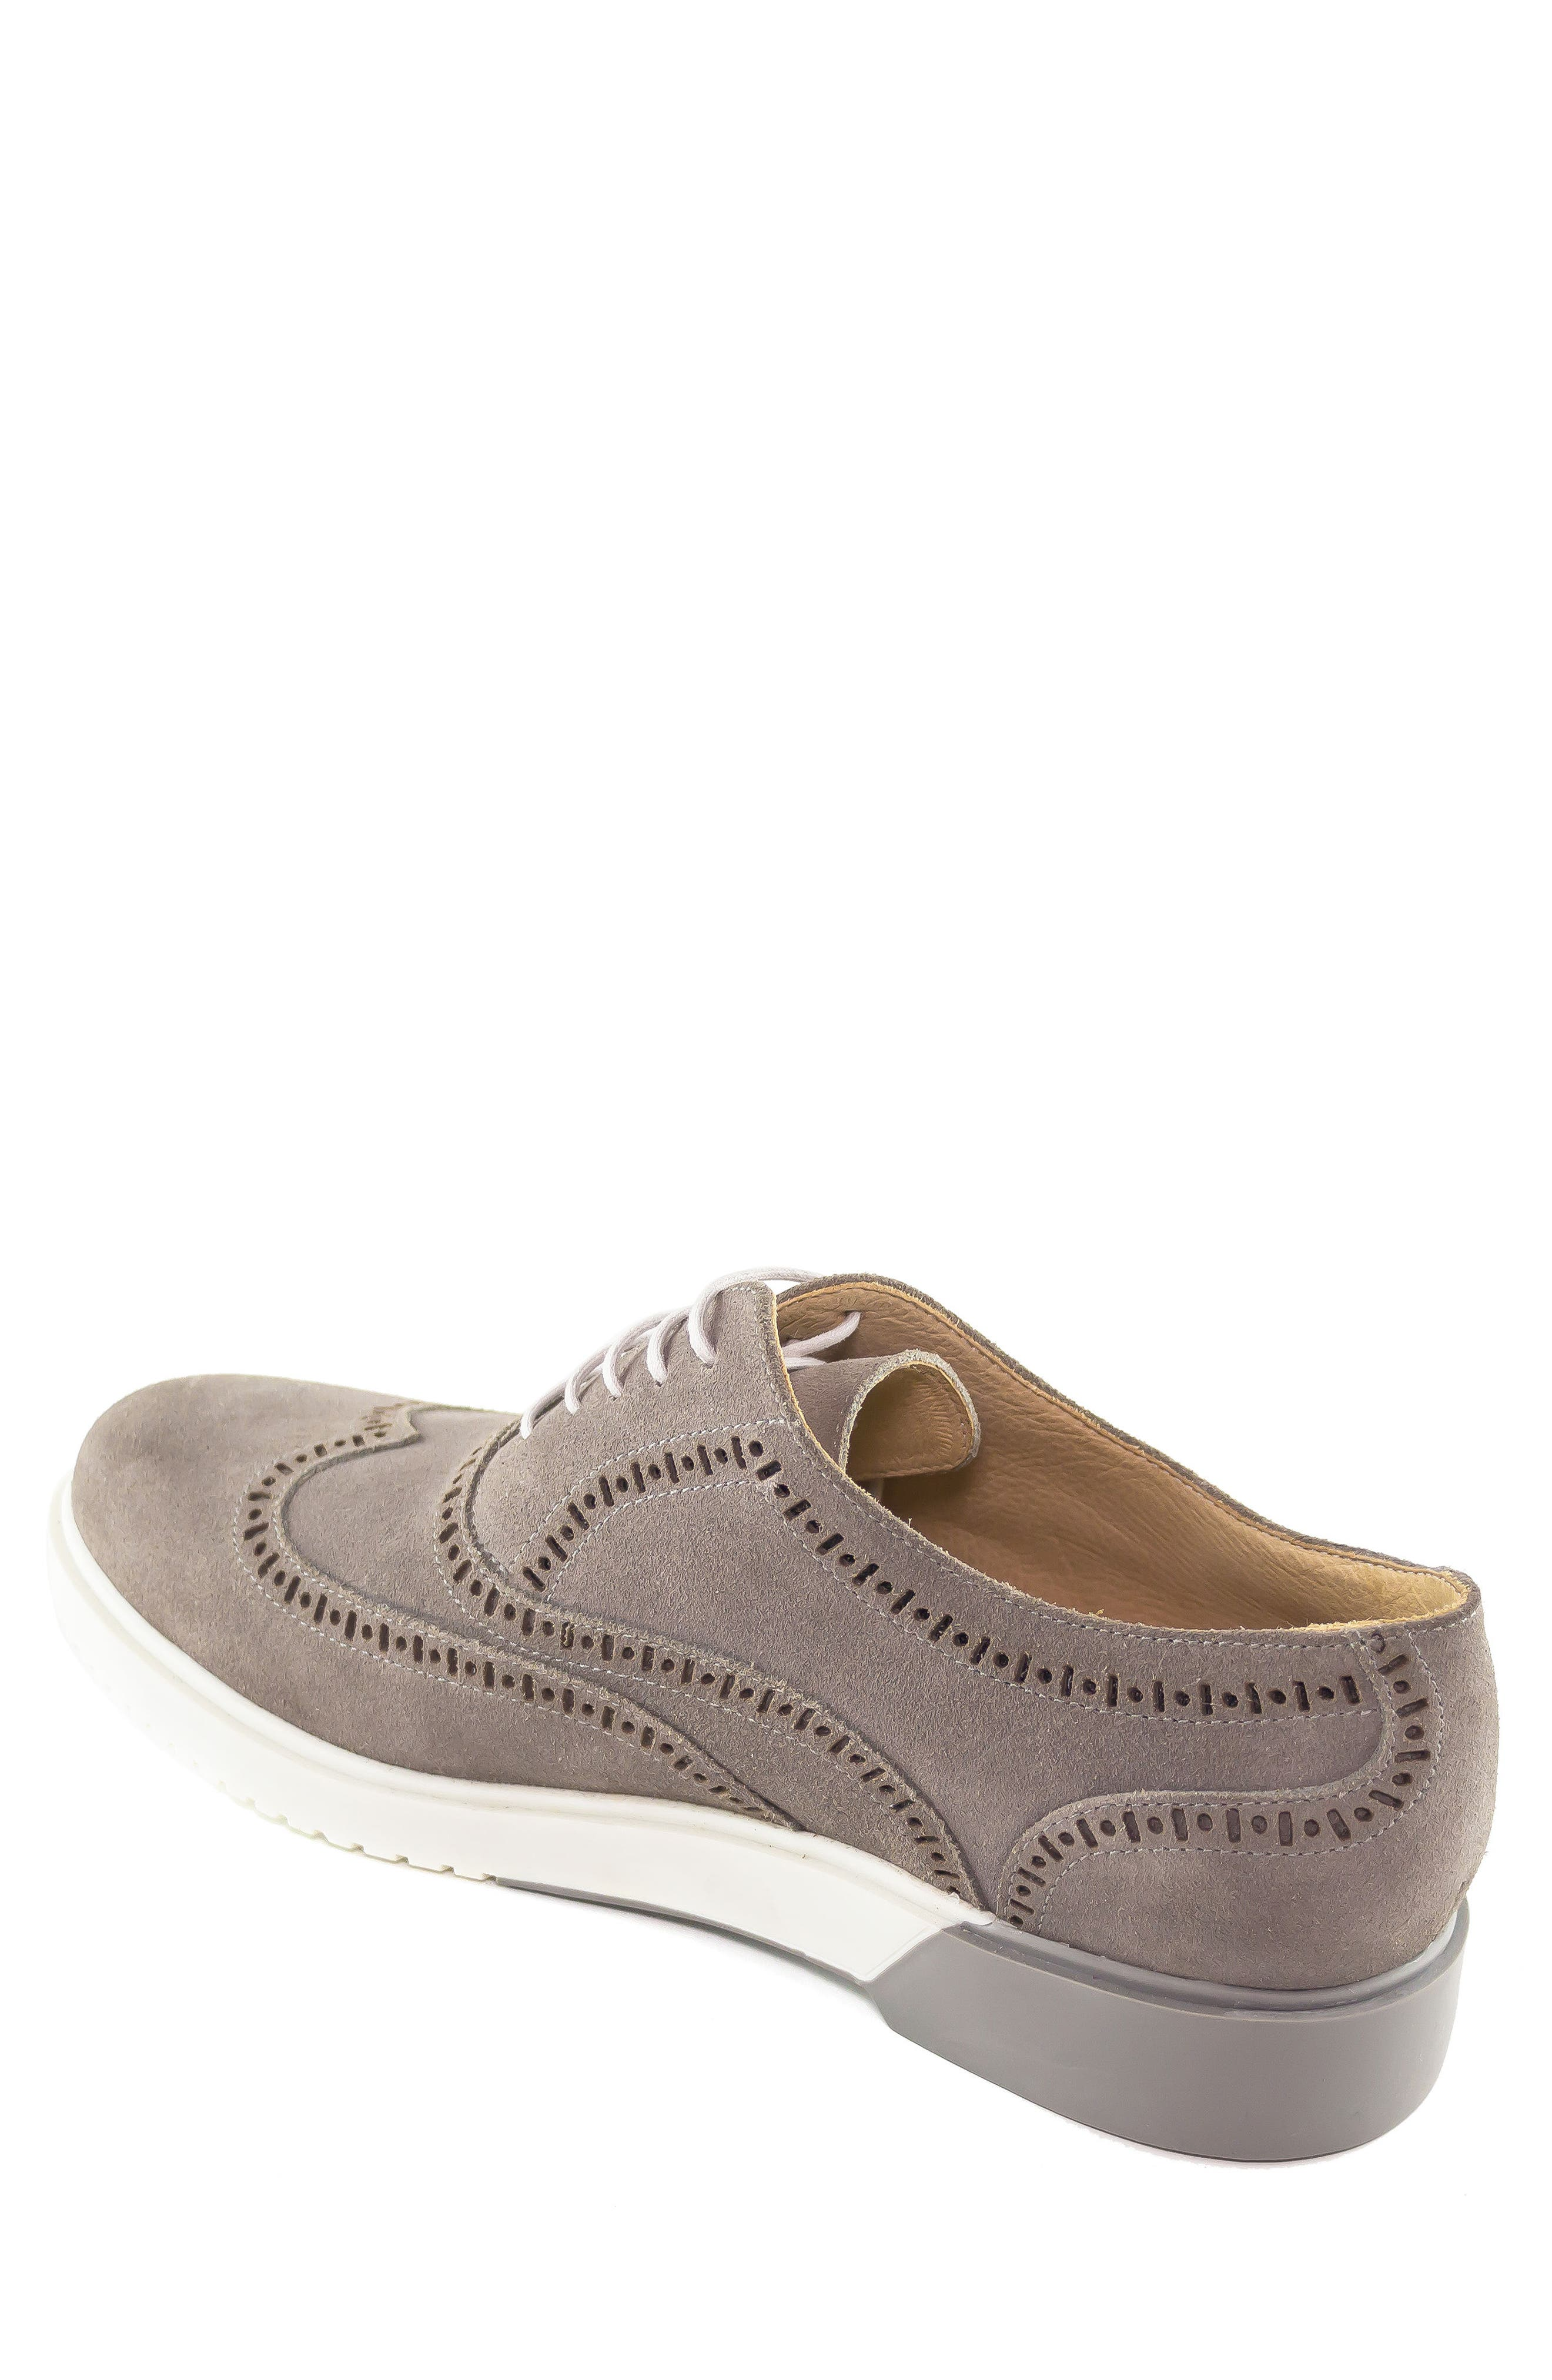 5th Ave Wingtip Sneaker,                             Alternate thumbnail 2, color,                             GREY SUEDE